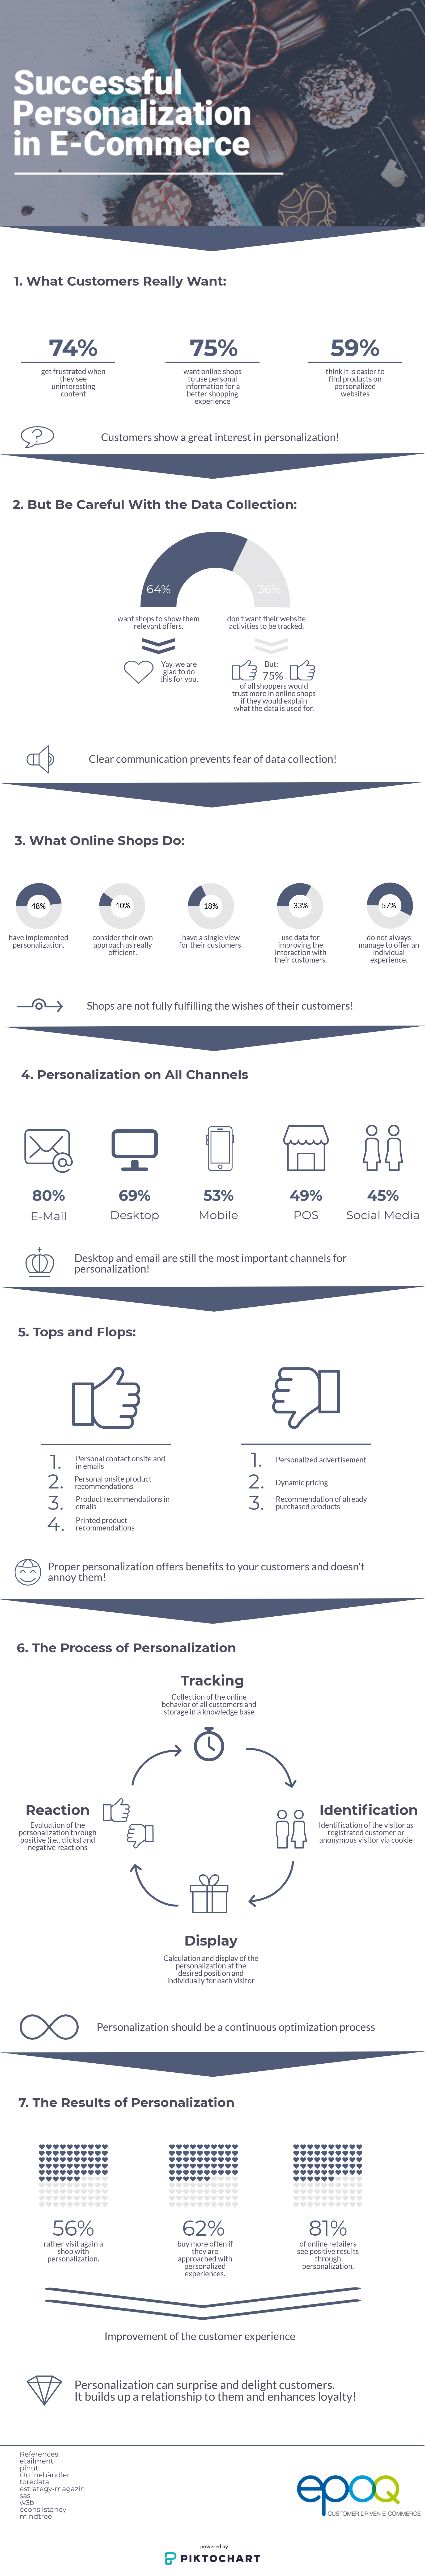 An infographic for successful personalisation by epoq